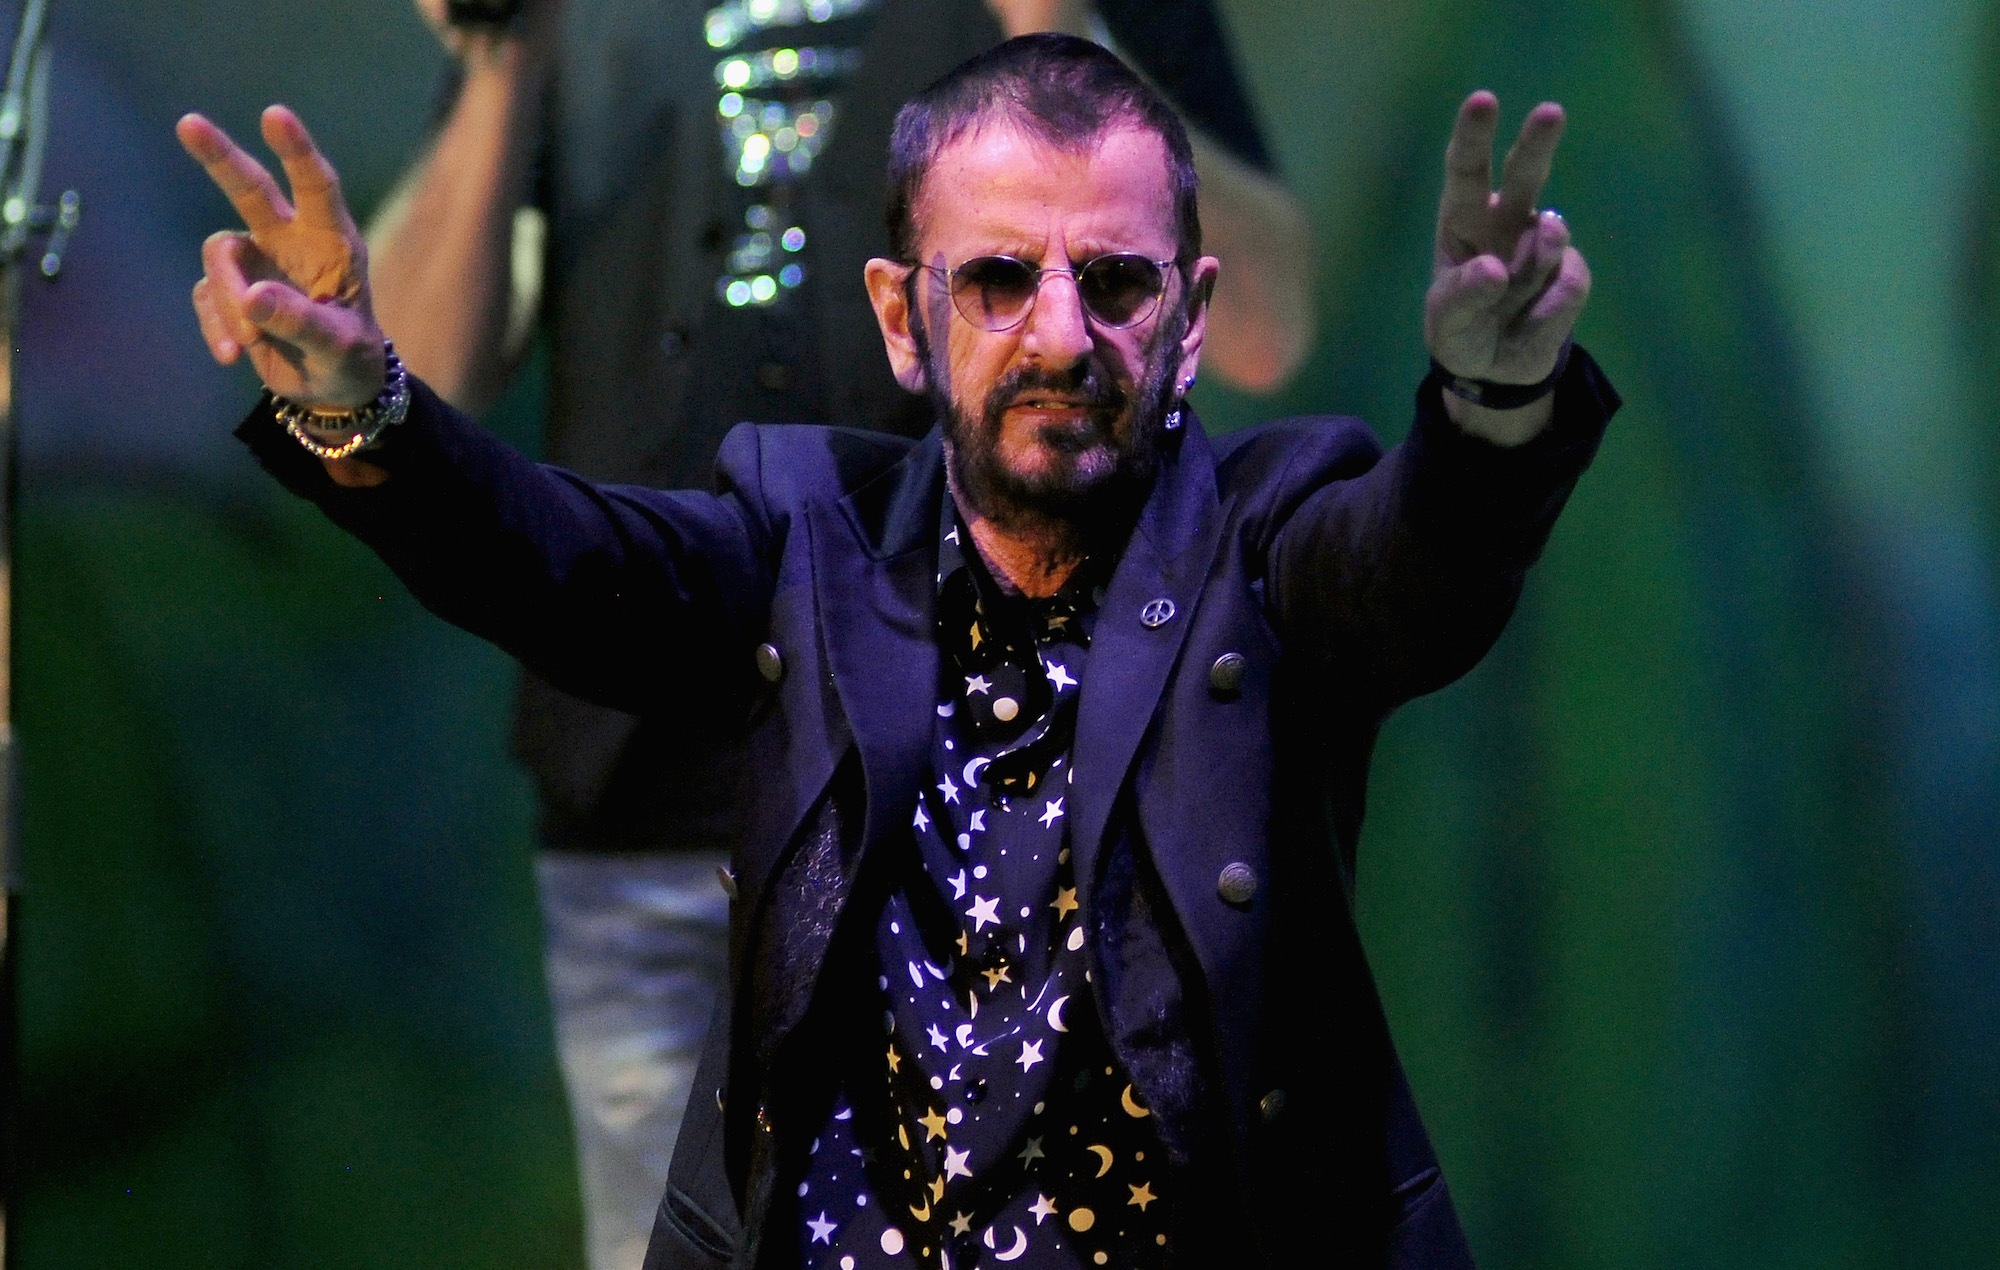 """It was not the end"": Ringo Starr confirms that 'Abbey Road' wasn't meant to be the last Beatles album"